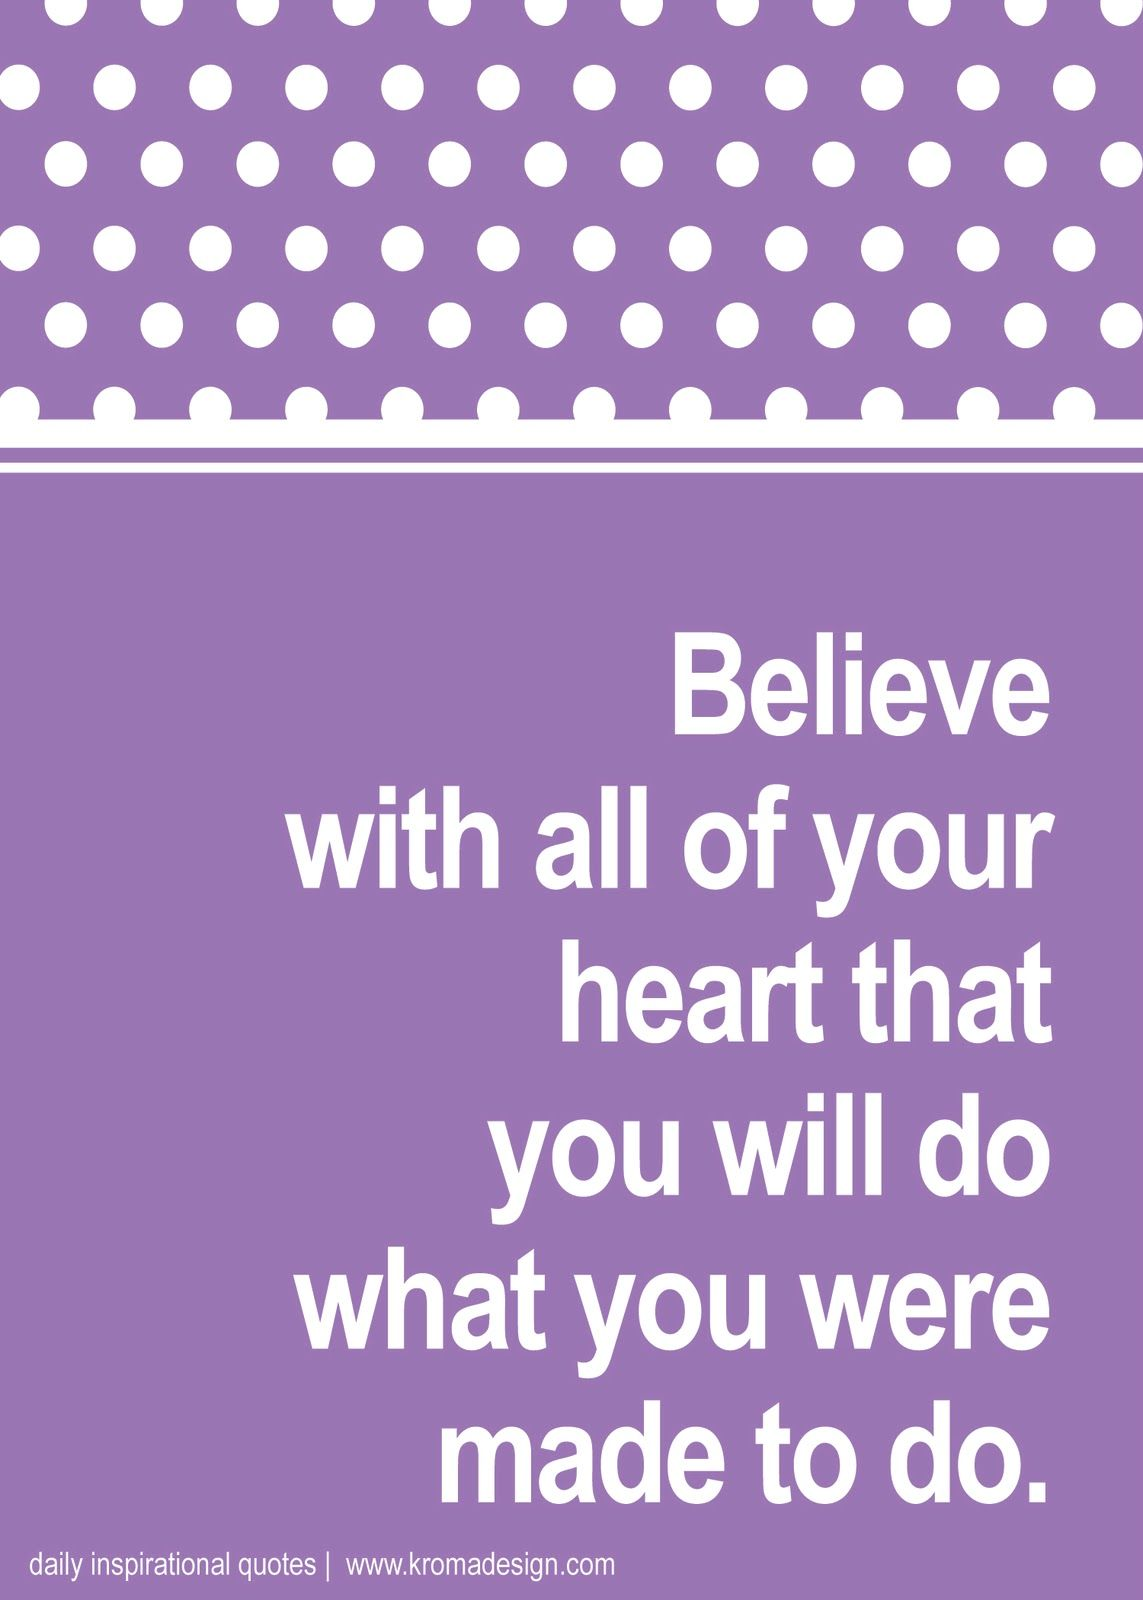 Inspirational Quotes for My Daughter | Click here to download a 5